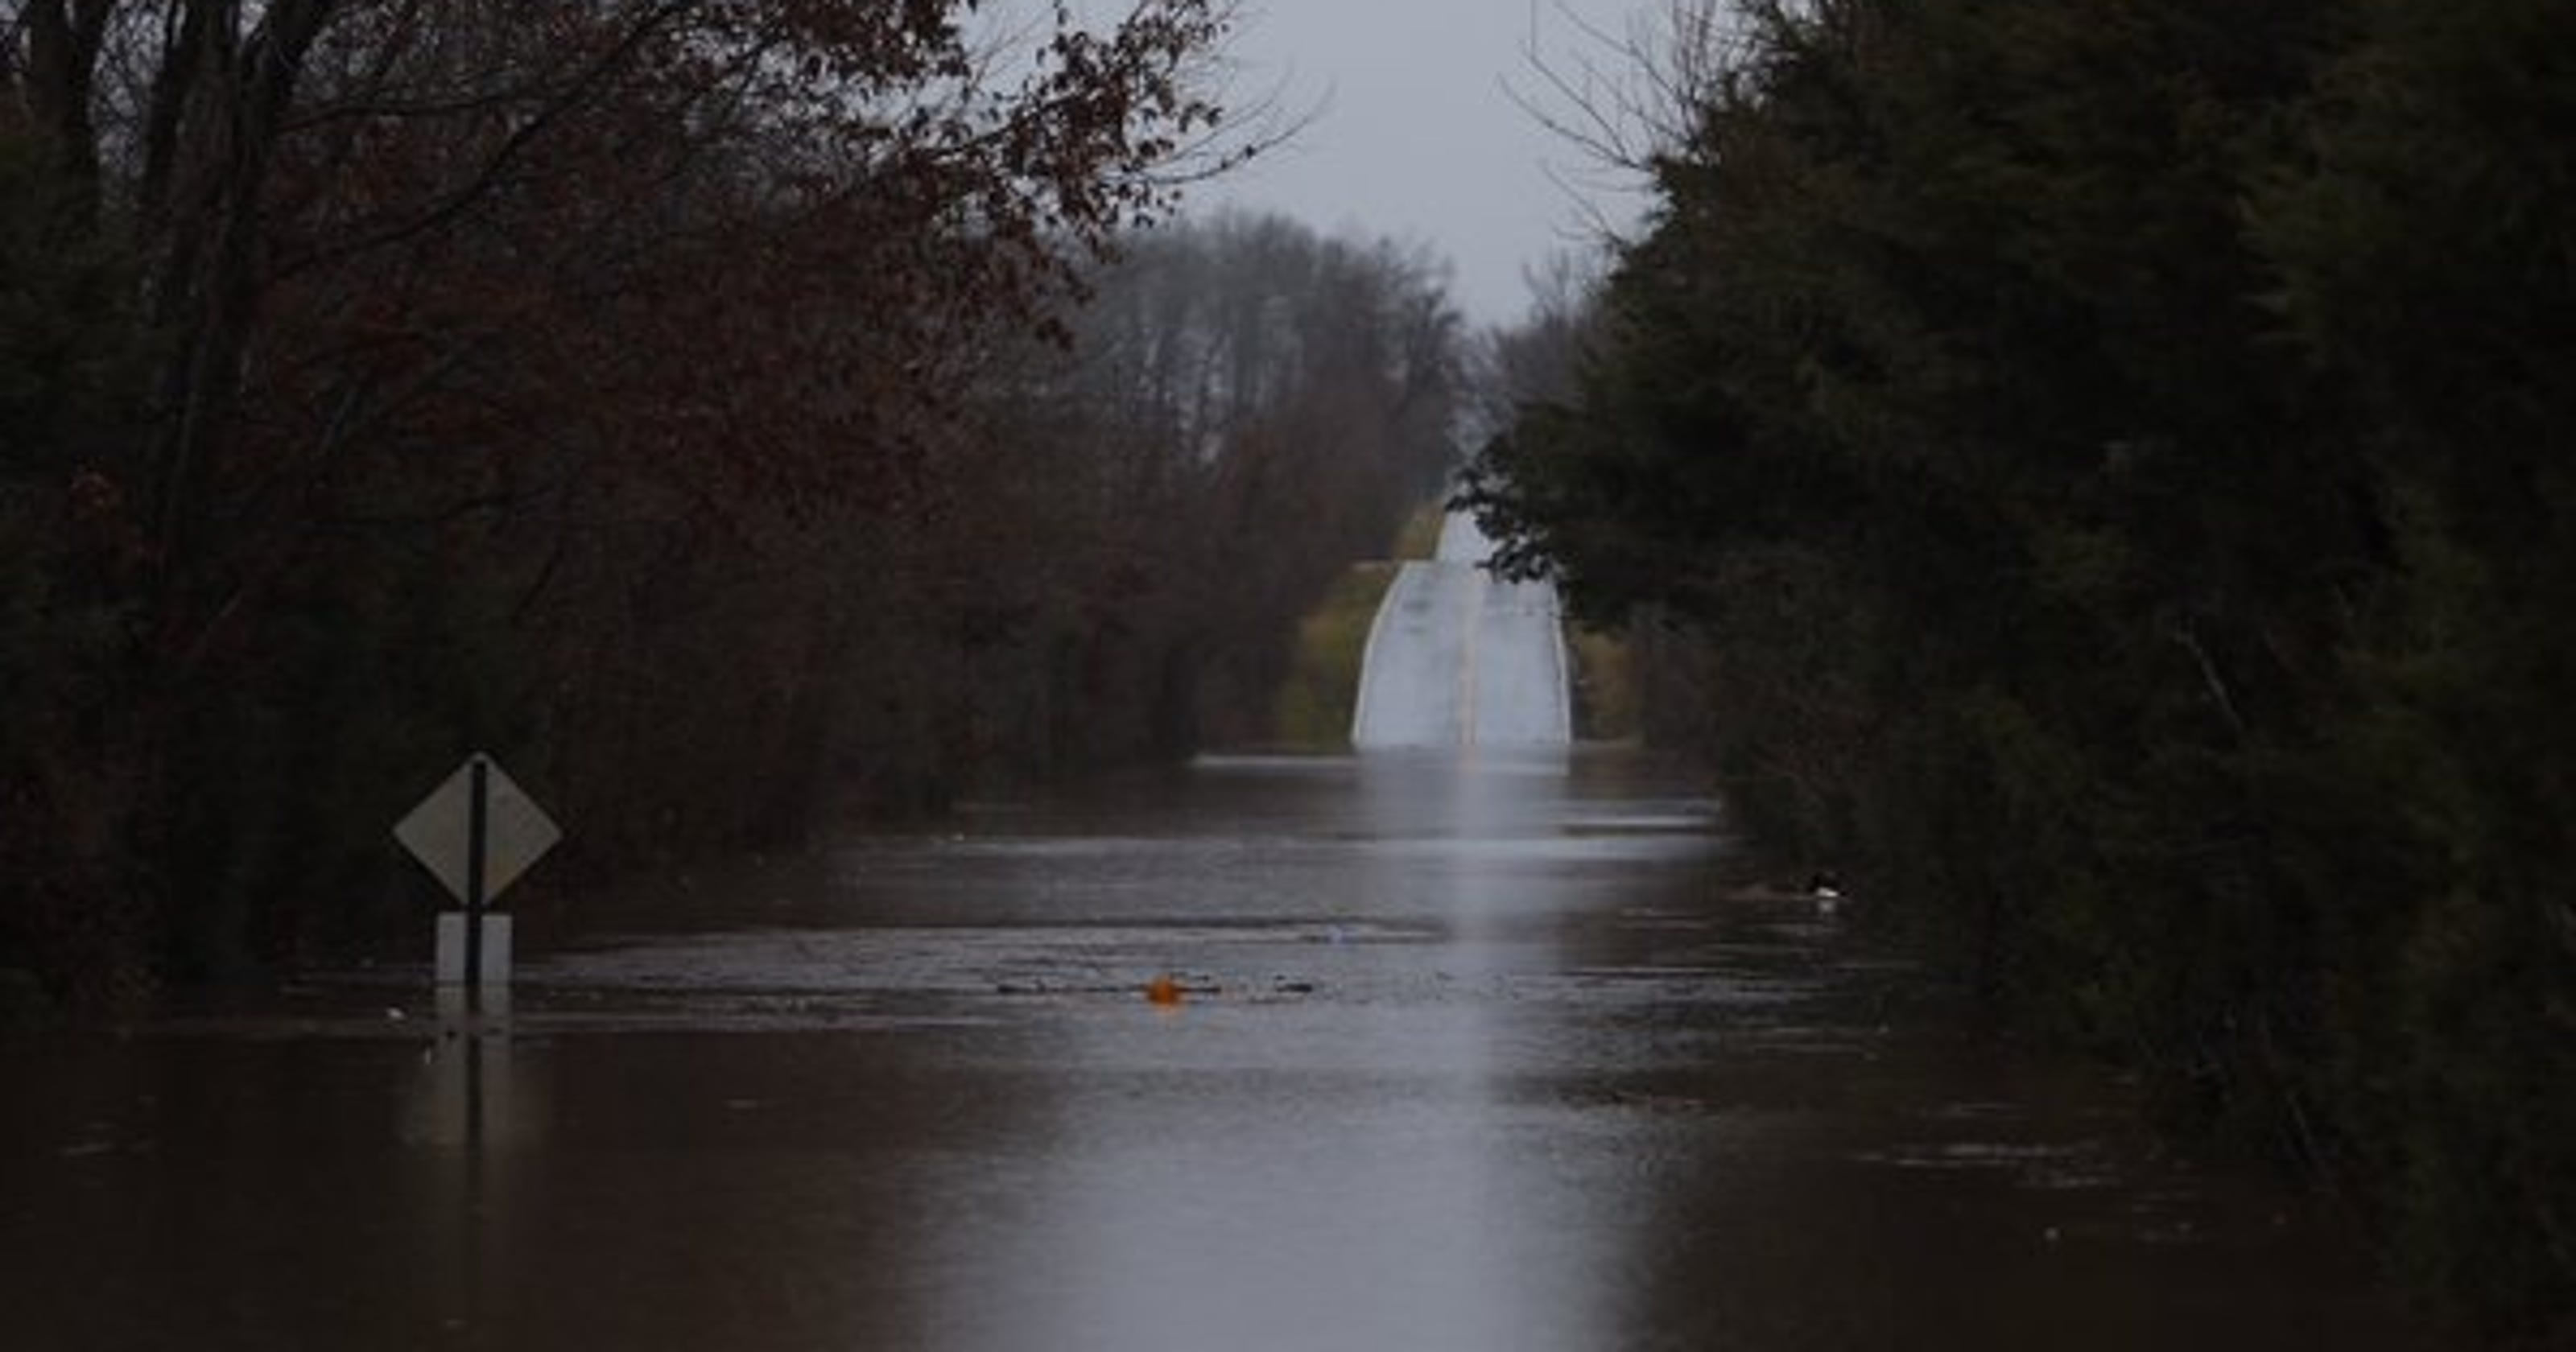 Weather update: Lanes closed on Highway 60 east of Springfield